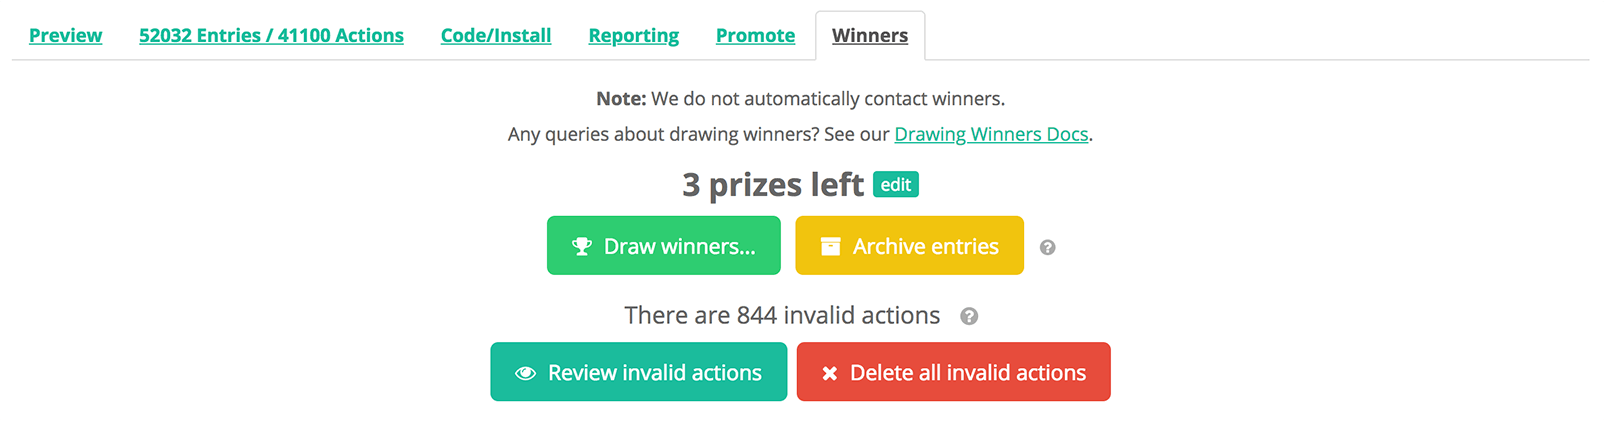 Drawing Random & Daily Winners For a Competition